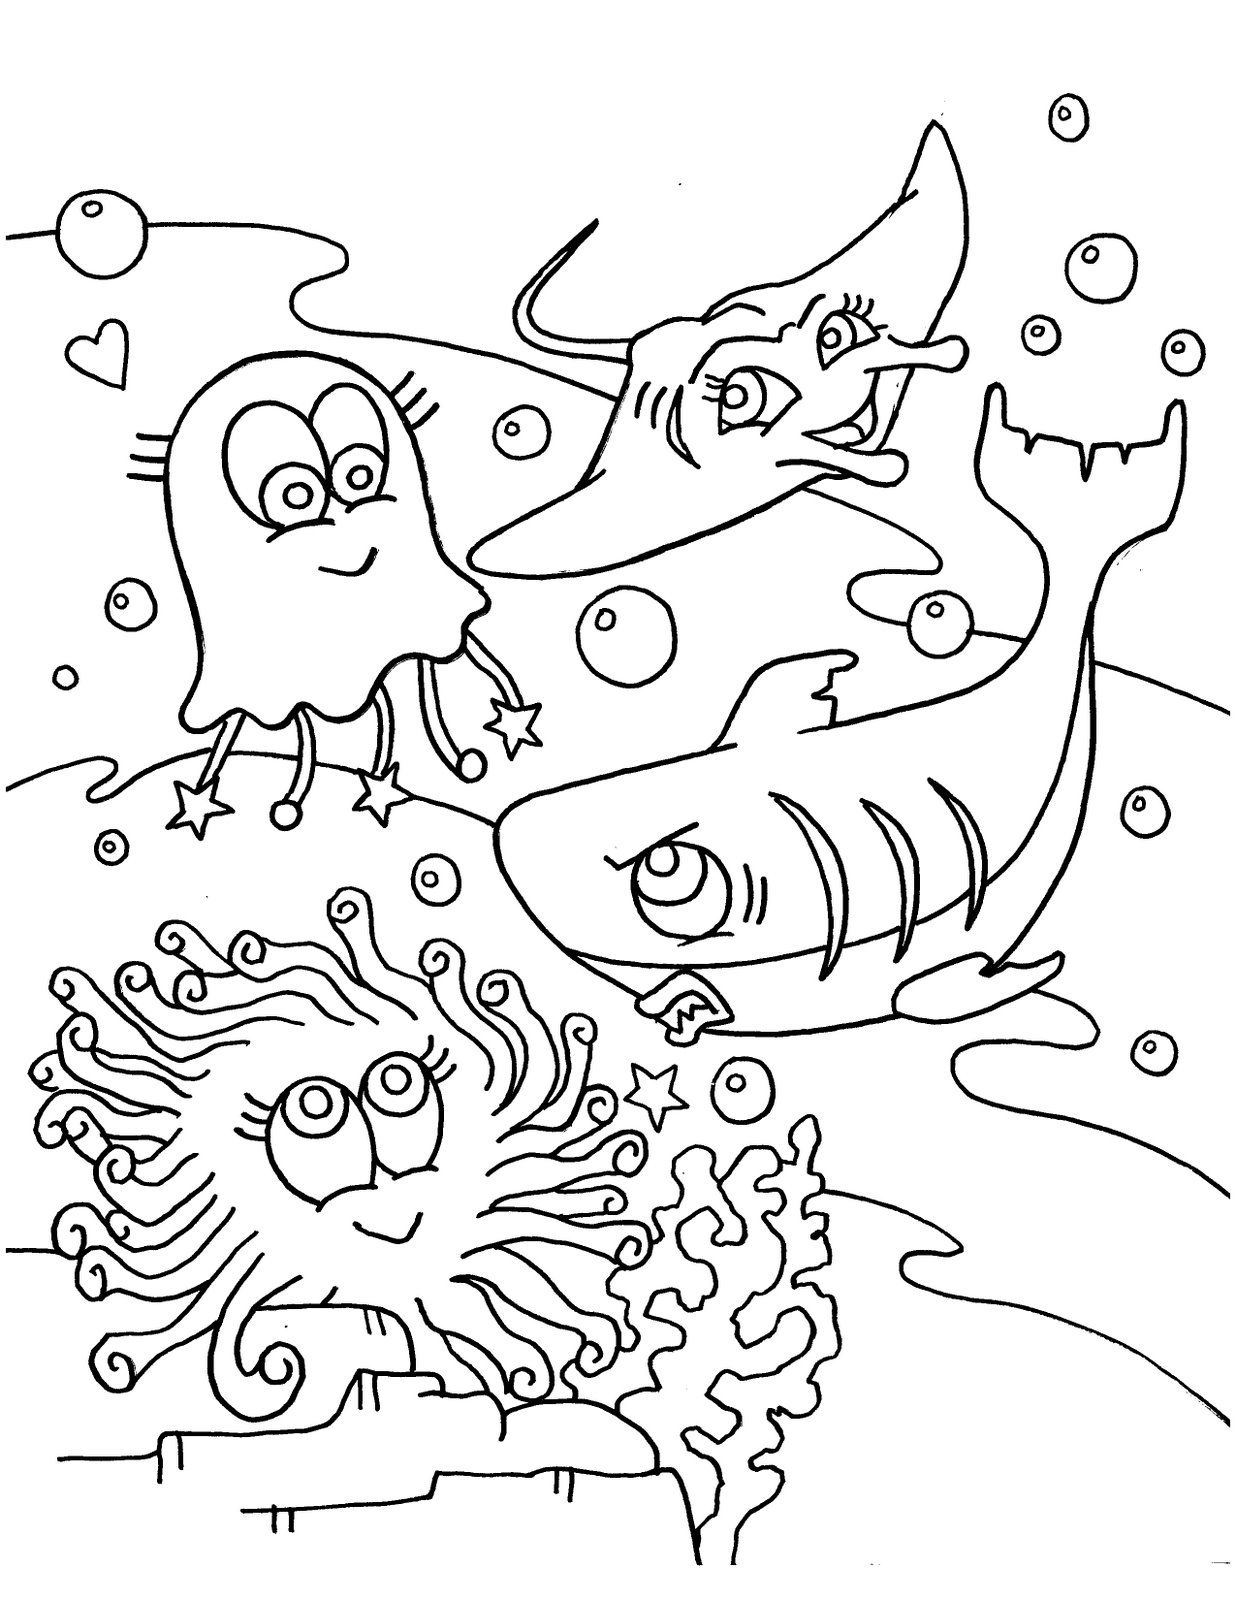 ocean animals plants coloring pages - photo#31